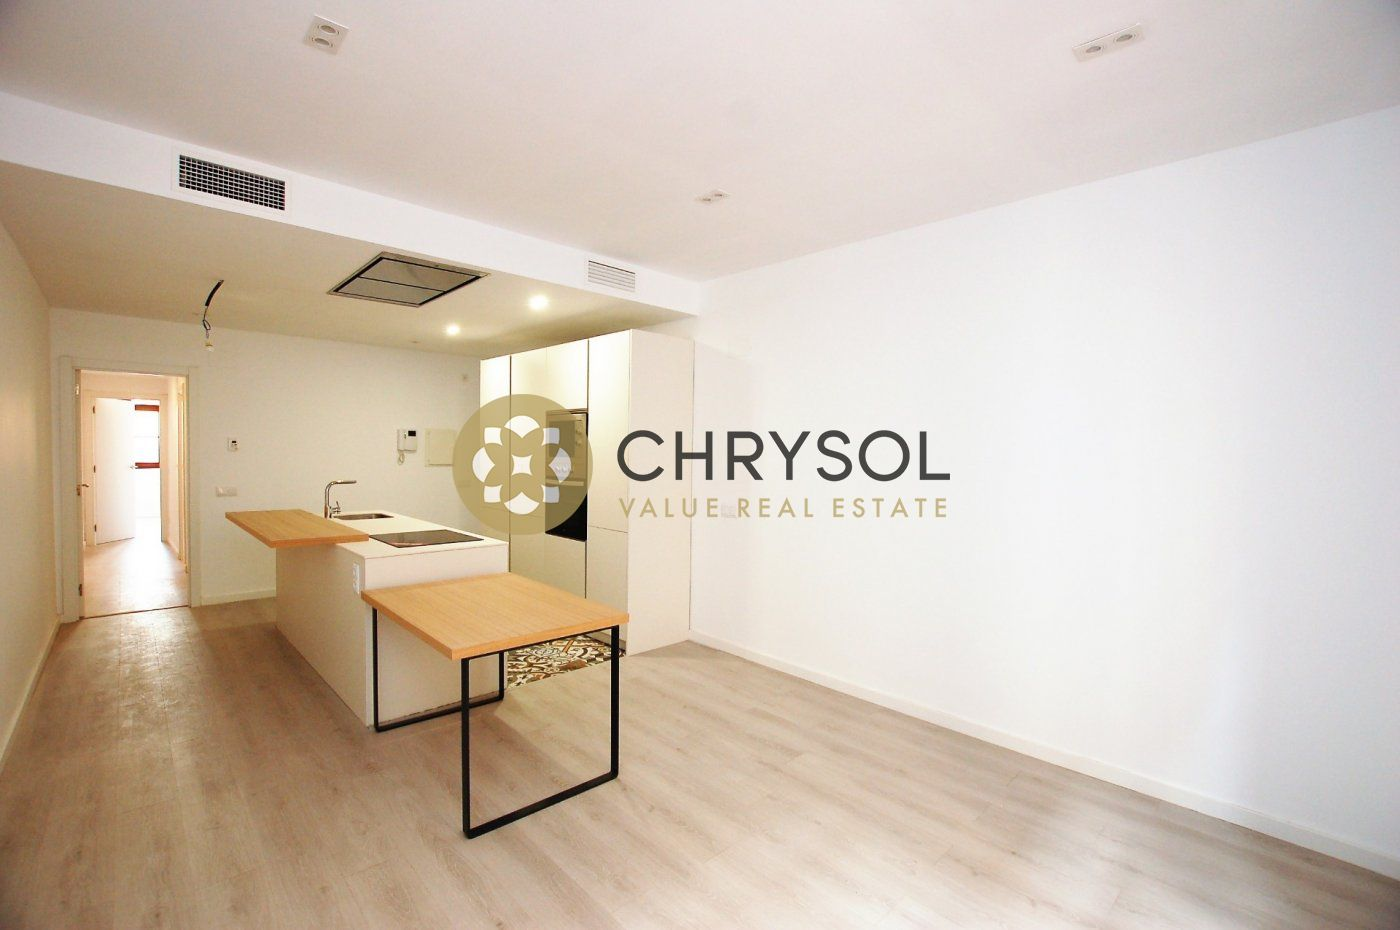 Photogallery - 23 - Chrysol Value